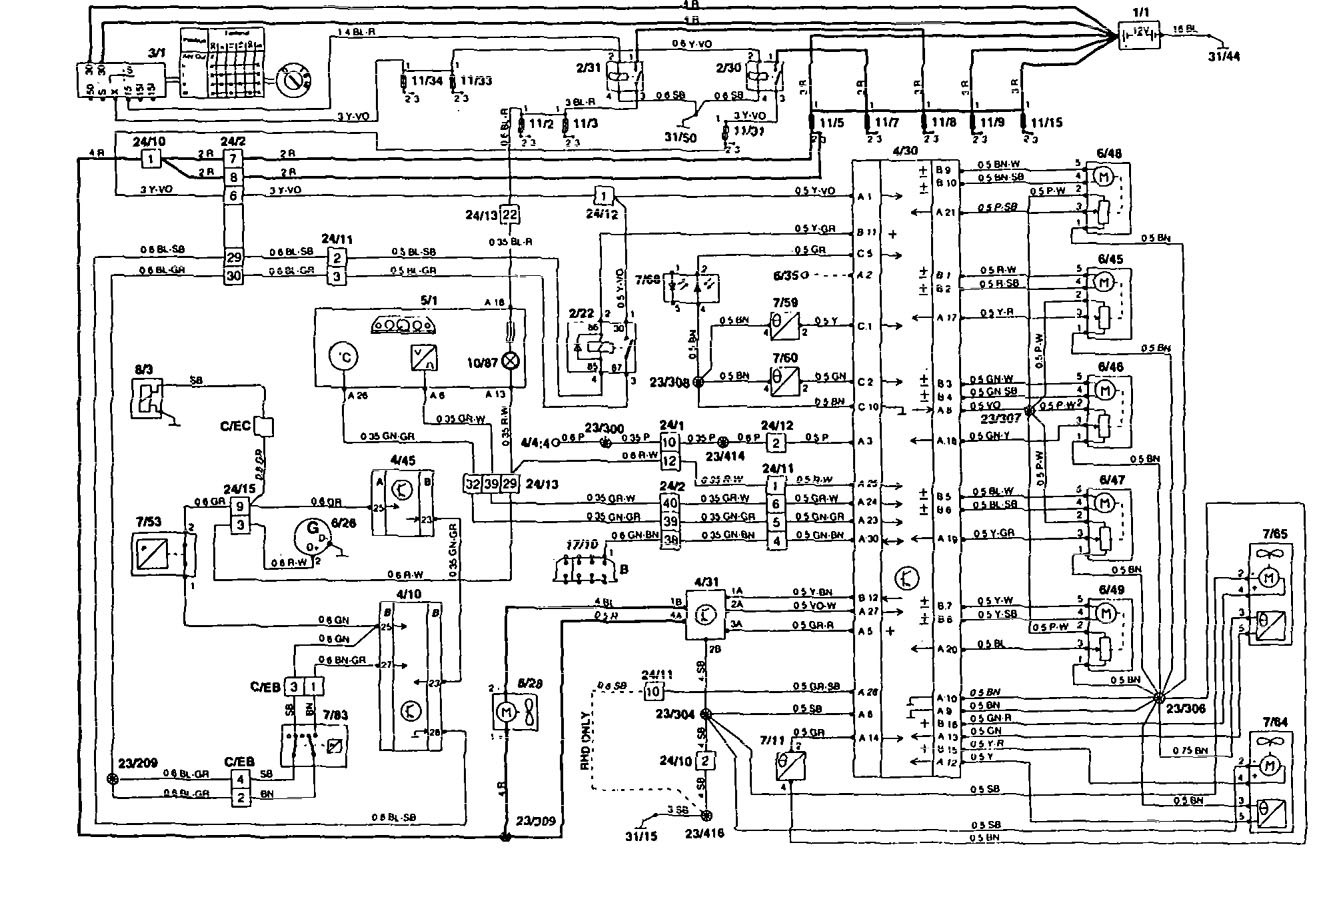 Volvo 850 1995 Wiring Diagrams Hvac Controls Carknowledge Control Diagram